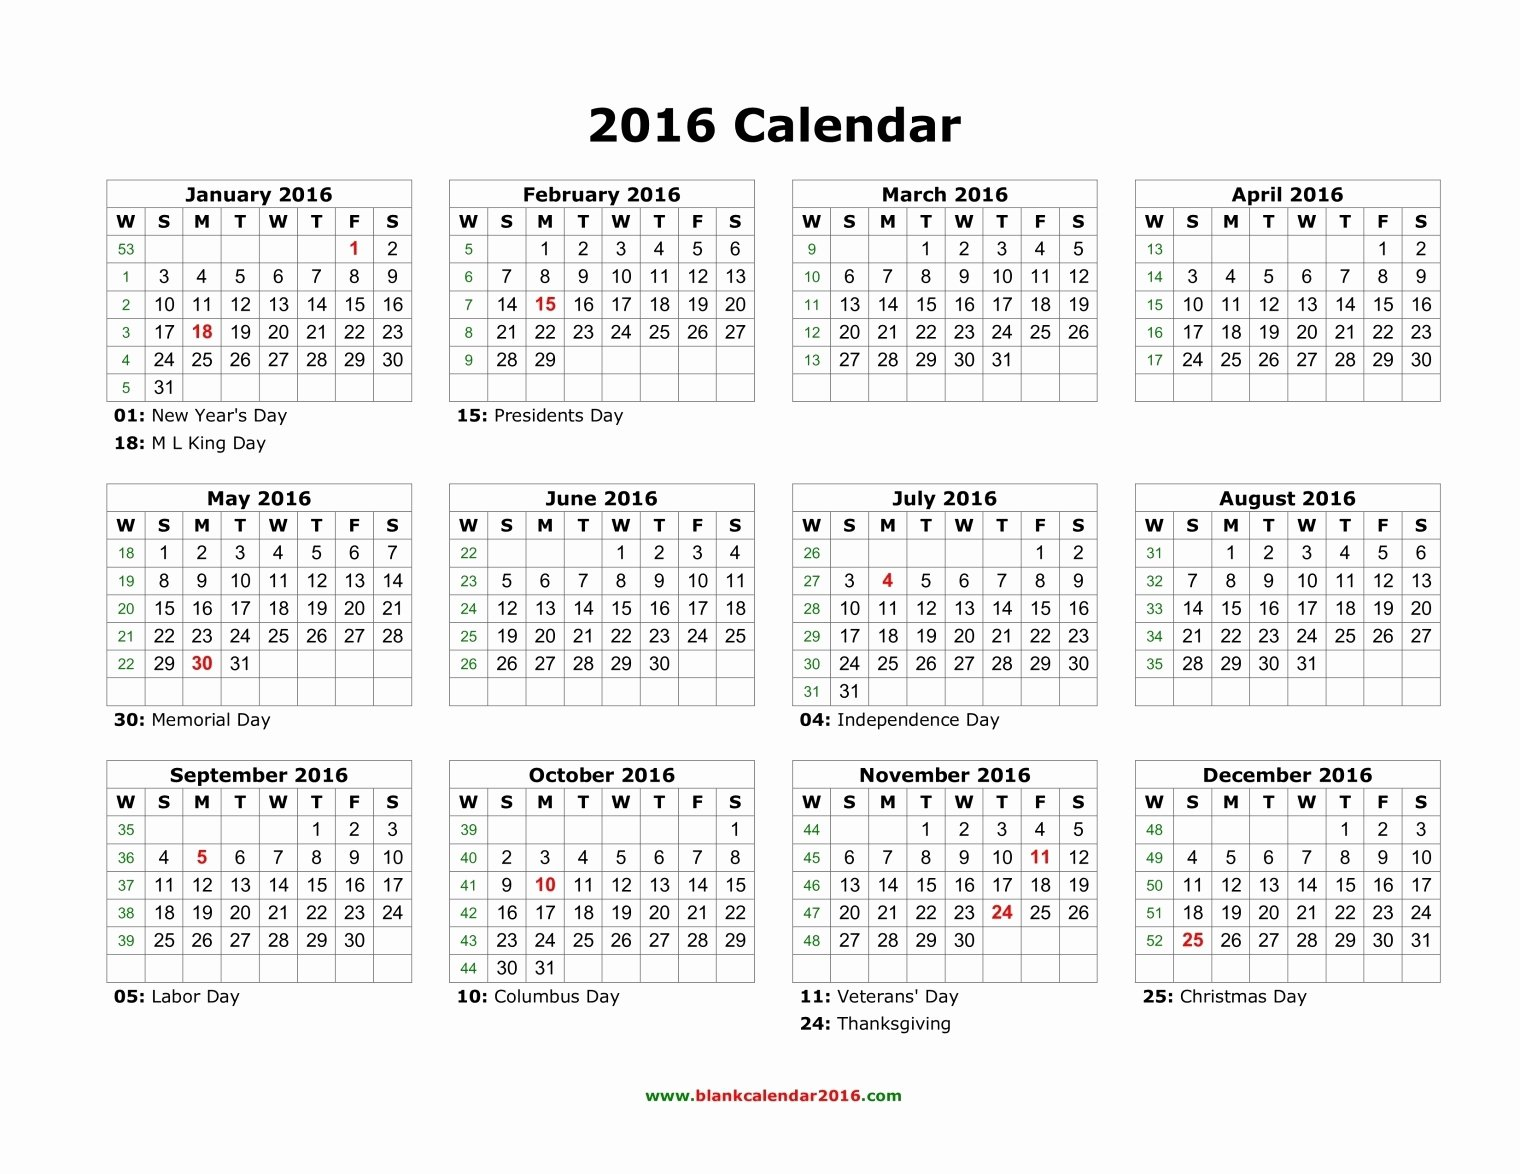 Blank Calendar Template 2016 Unique 2016 Yearly Calendar with Holidays Printable